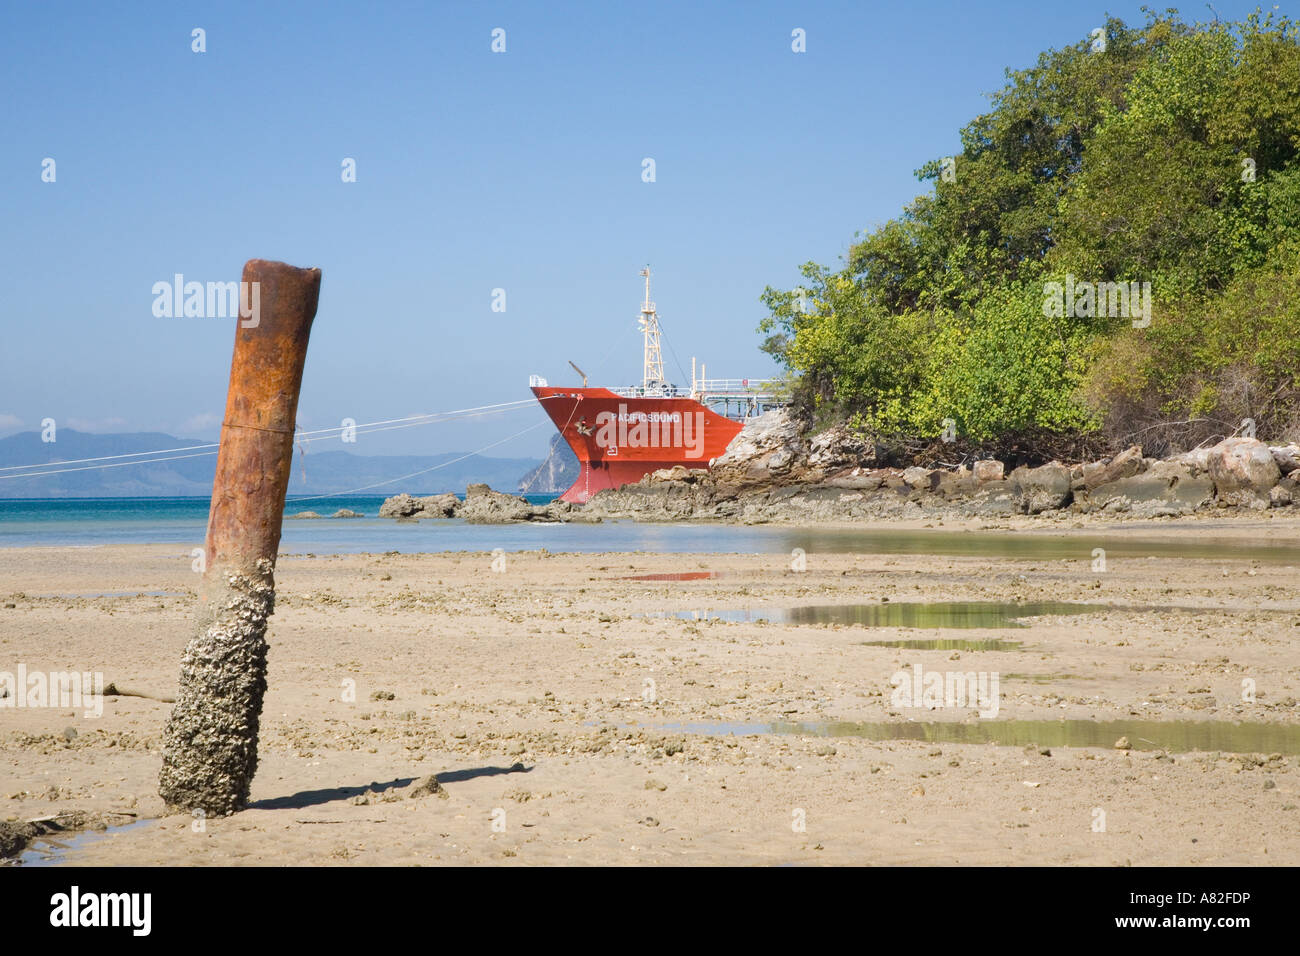 Commercial Limestone or gypsum Ore Carrier ships Krabi, Province, Thailand, Asia - Stock Image